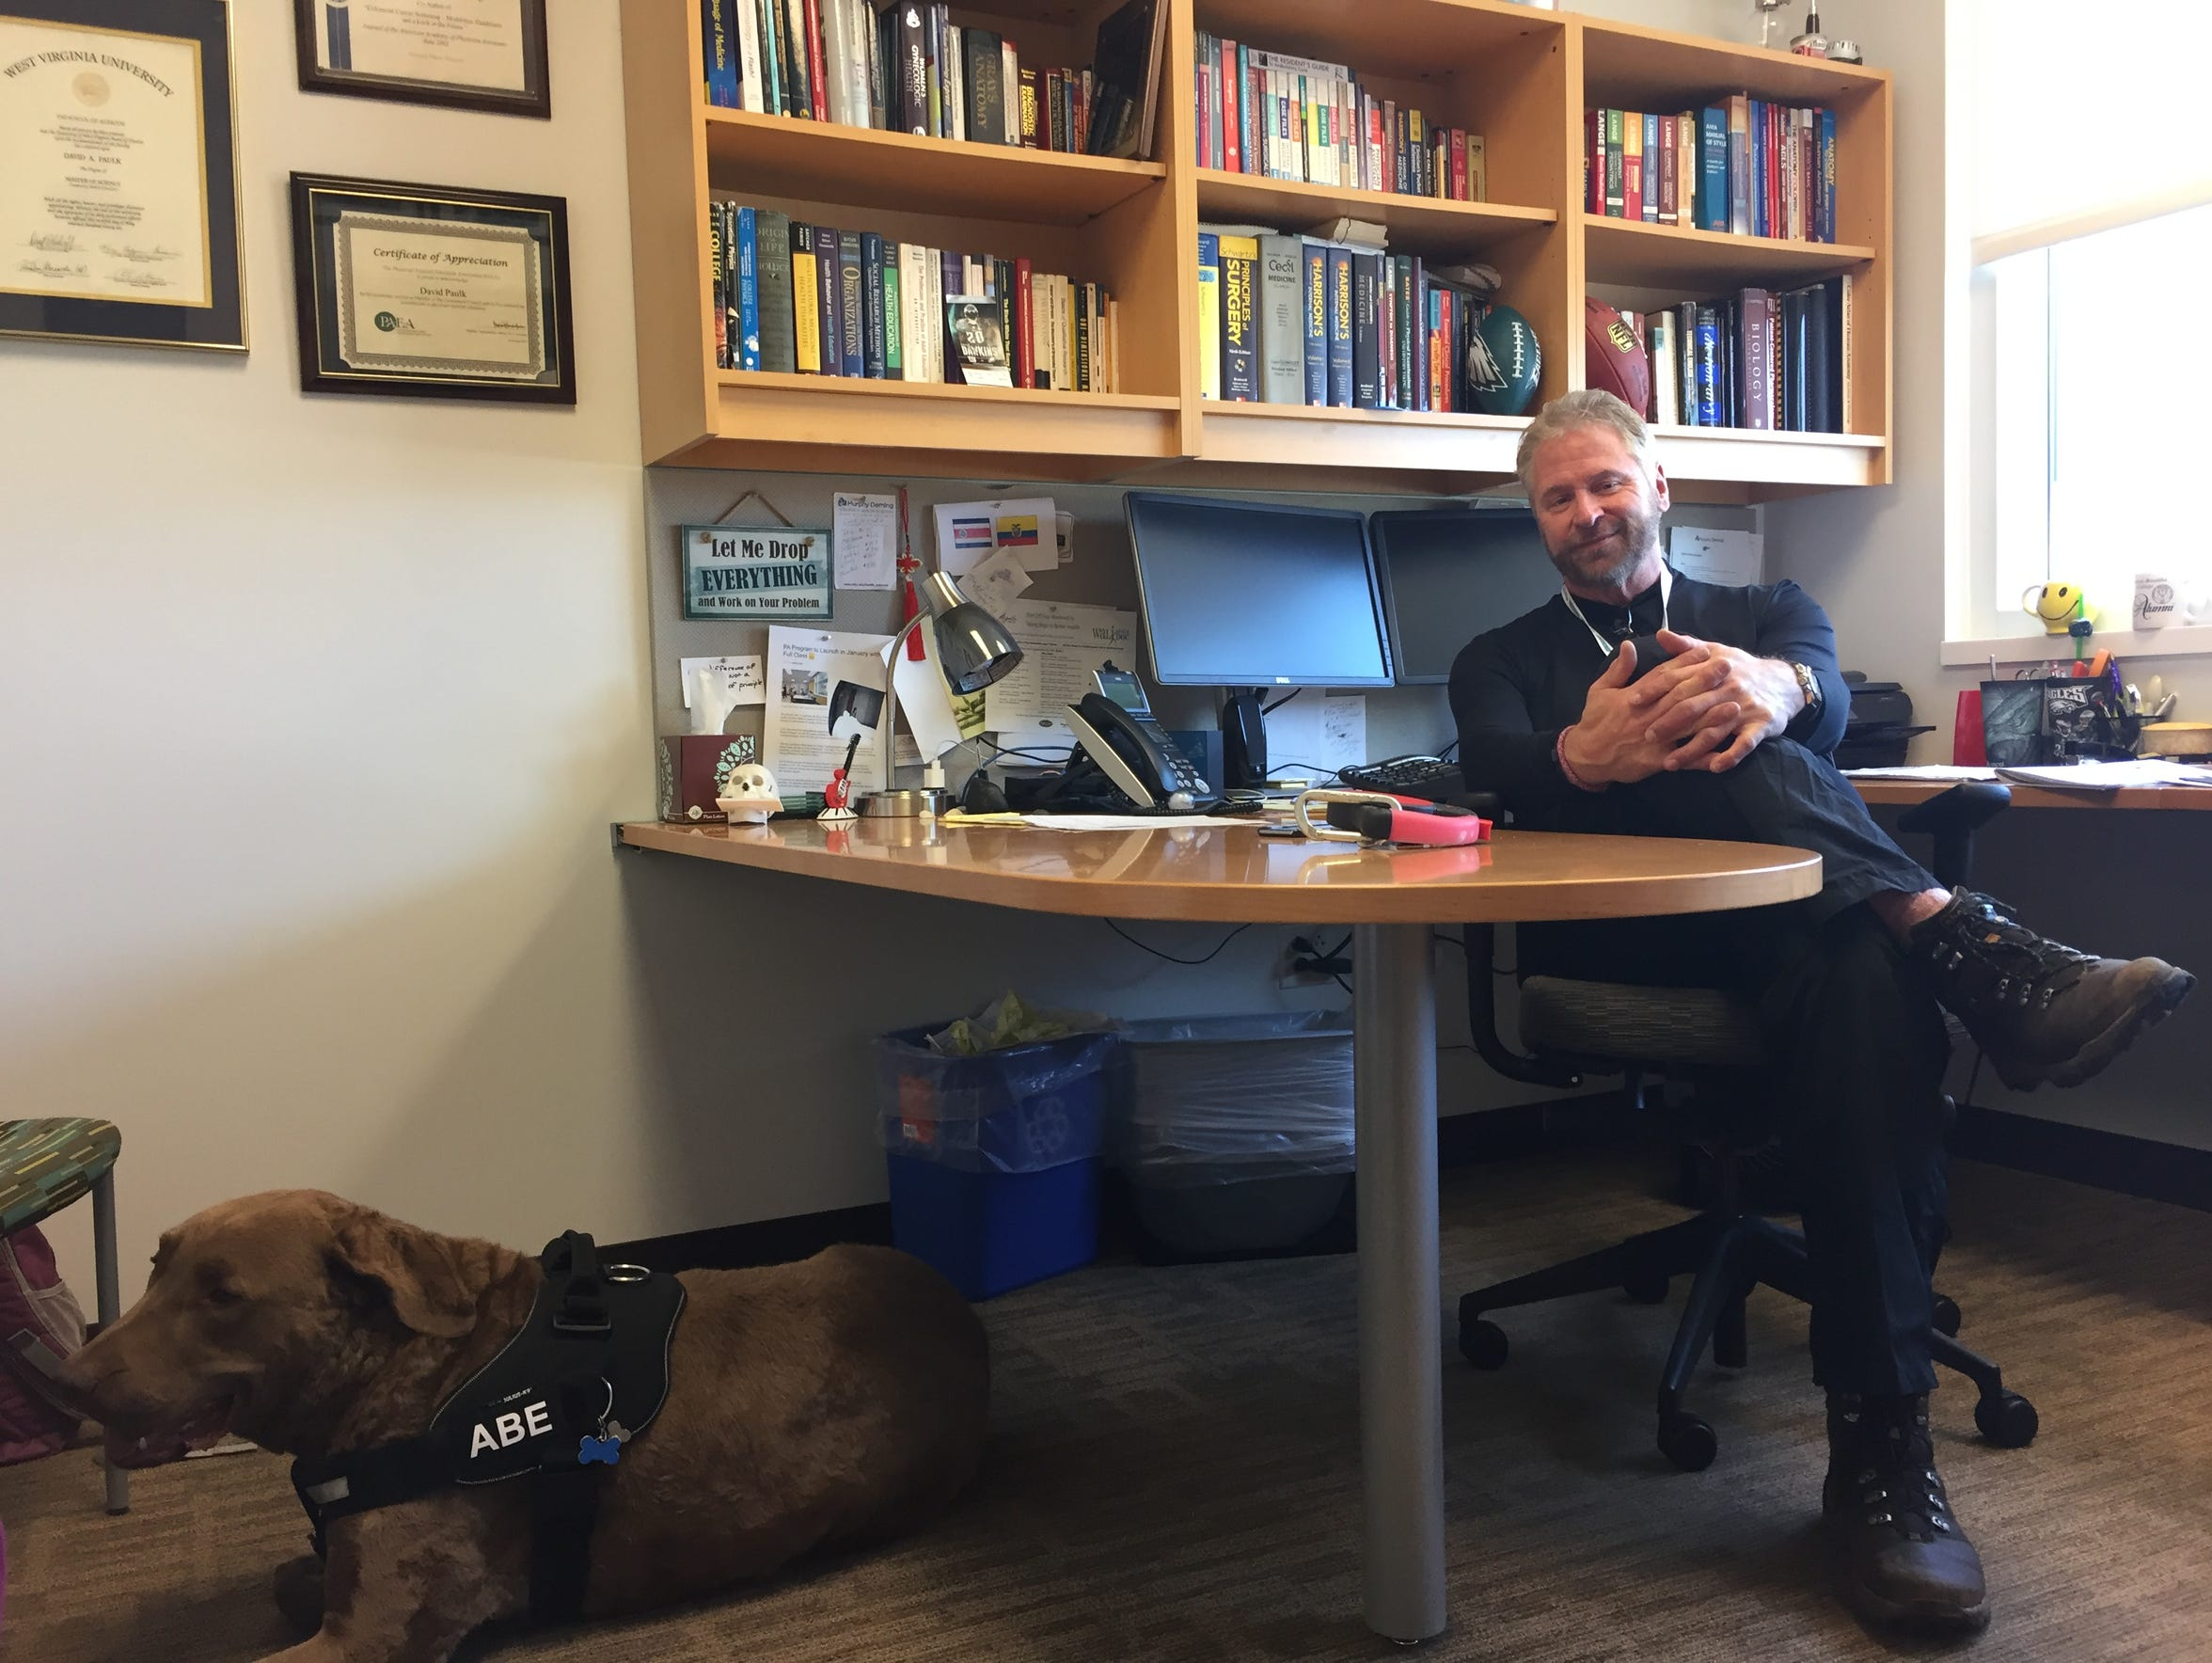 David Paulk and his dog, Abe, in his office at Mary